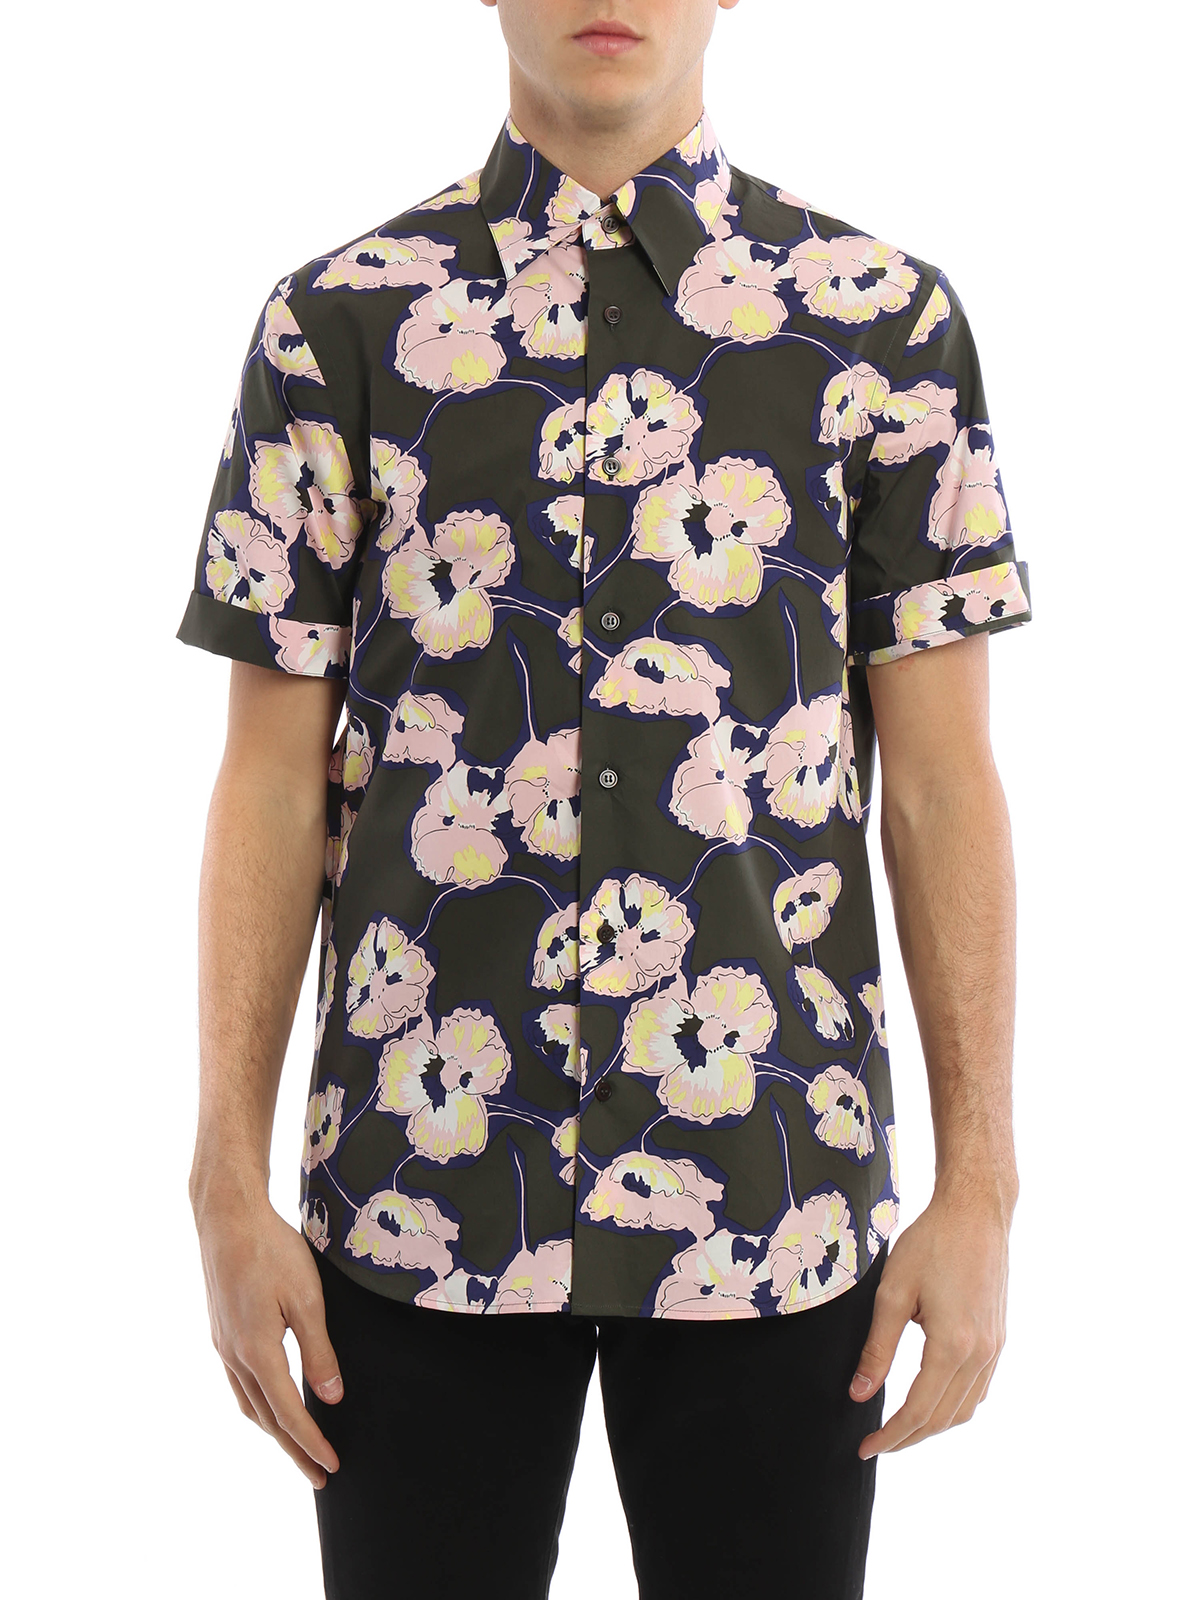 Printed cotton short sleeve shirt by marni shirts shop for Printed short sleeve shirts